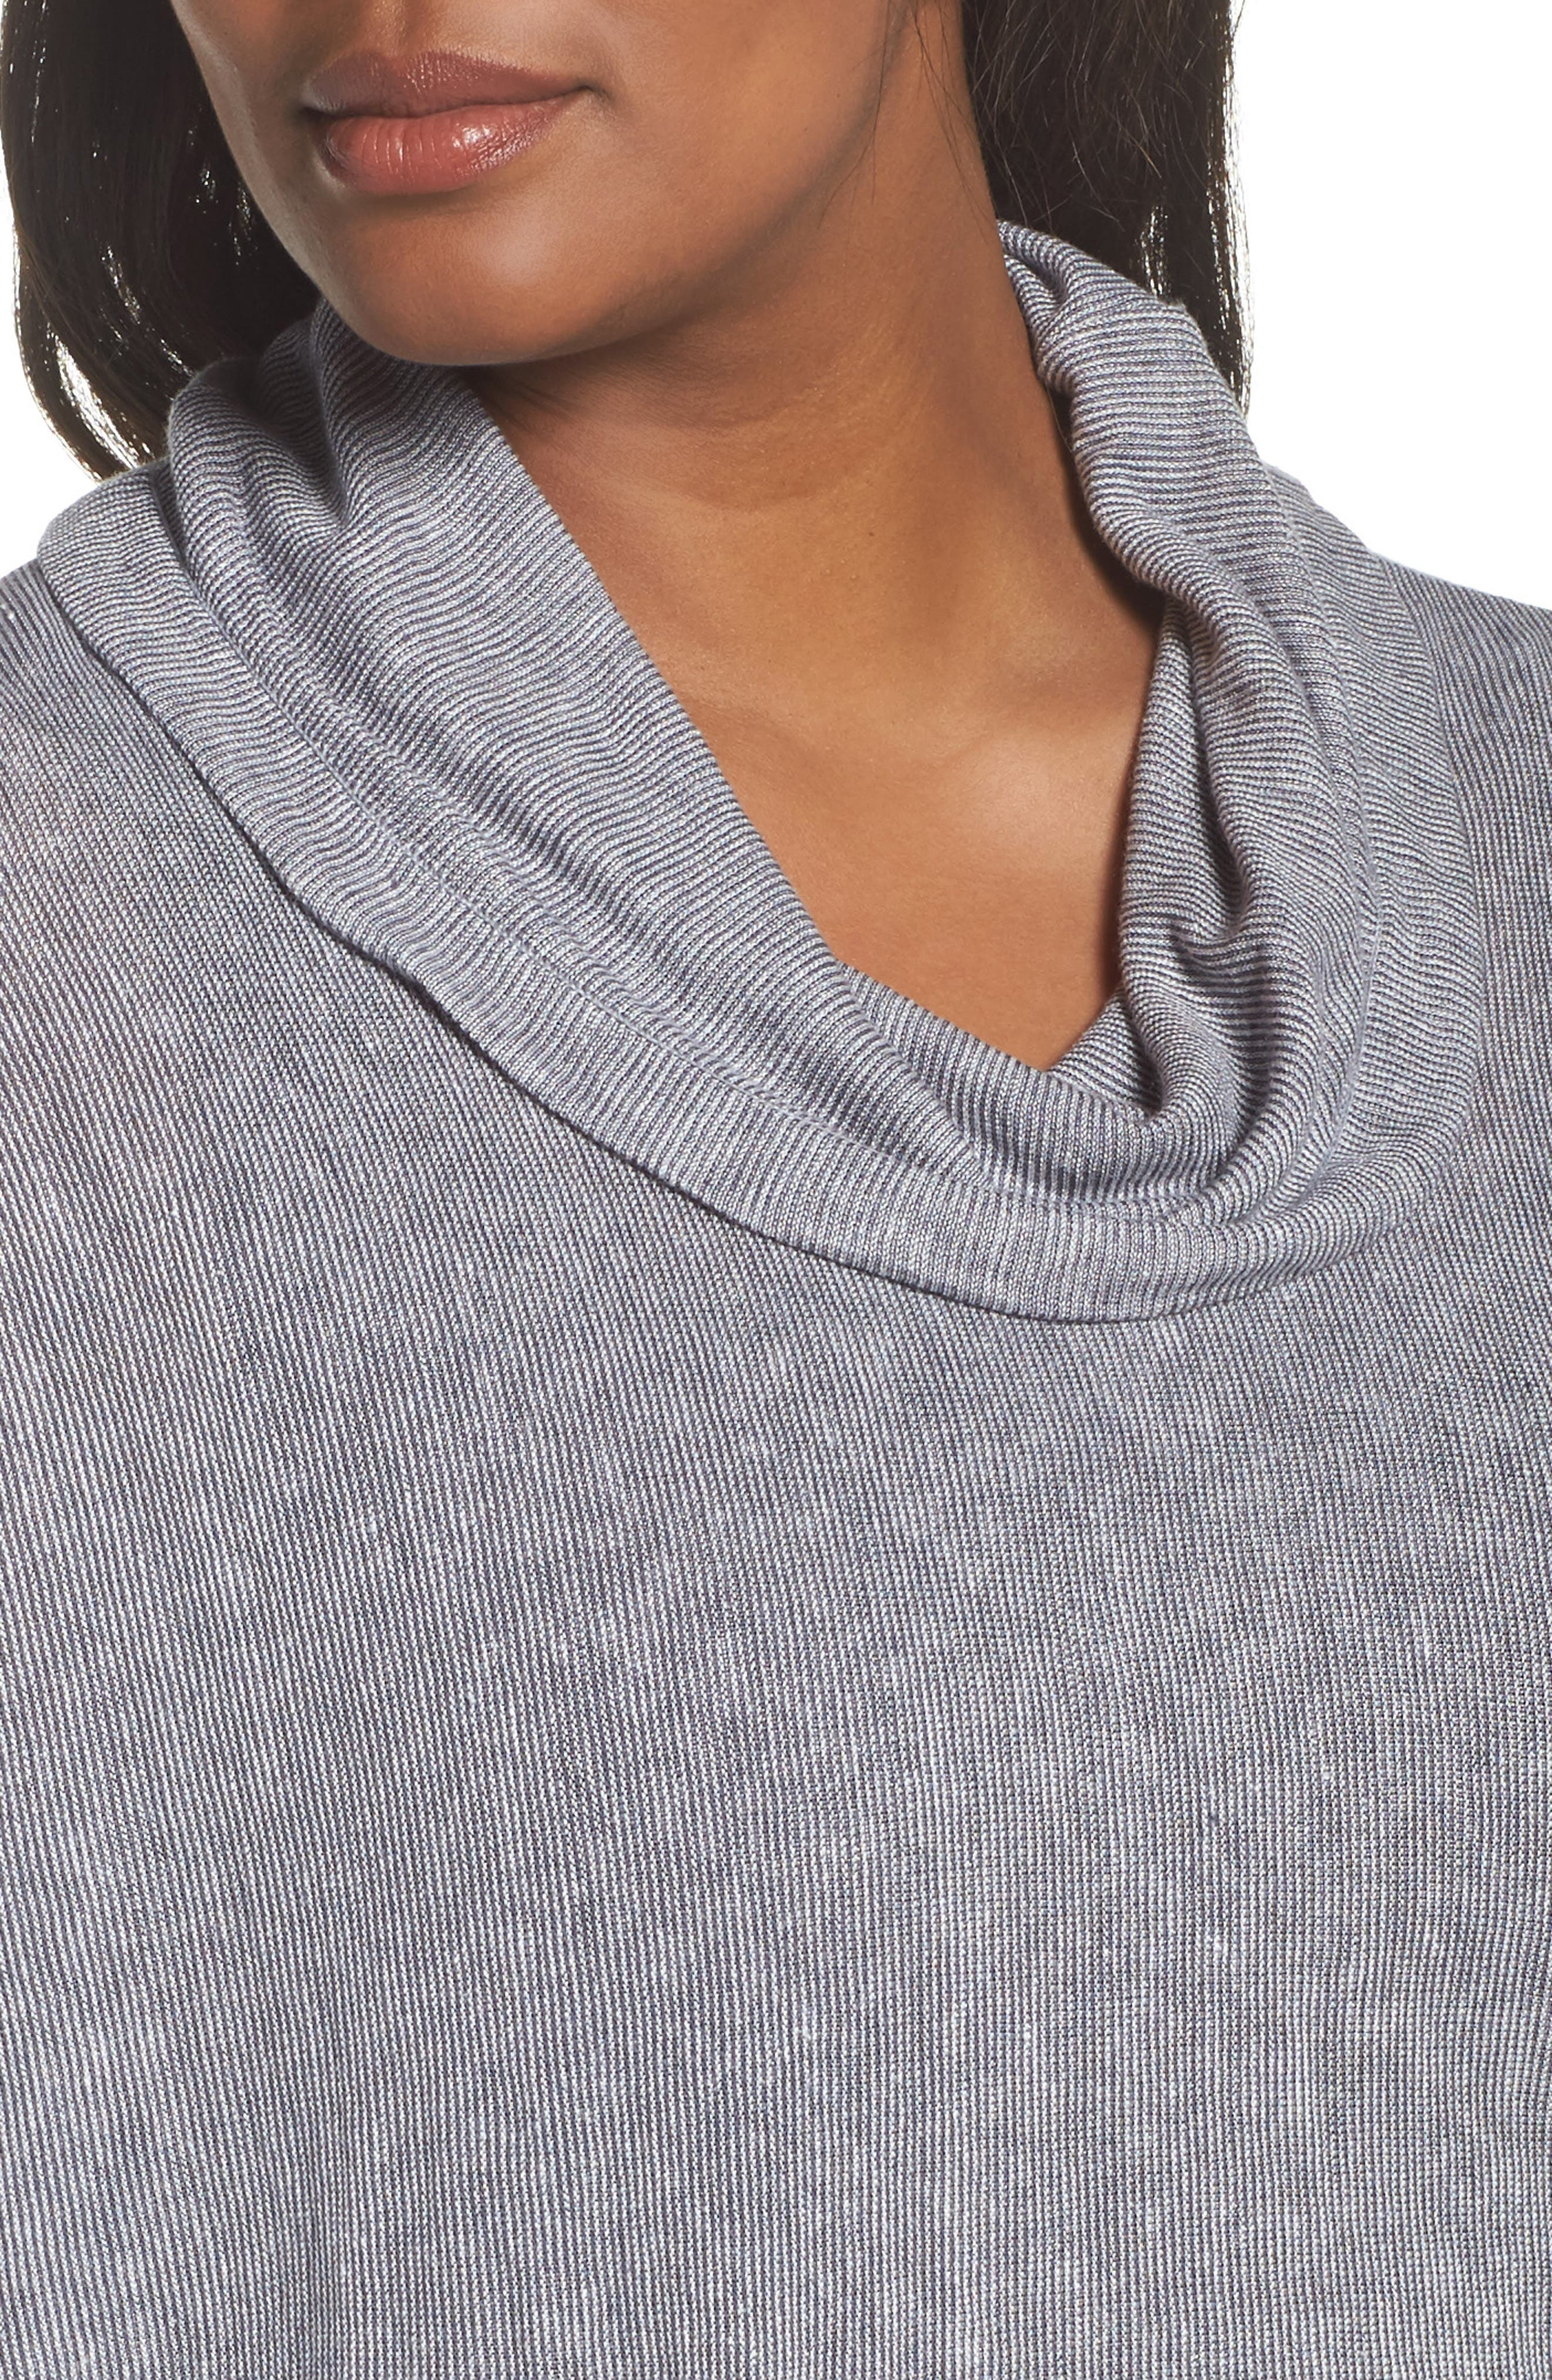 Blissful Cowl Neck Top,                             Alternate thumbnail 4, color,                             020